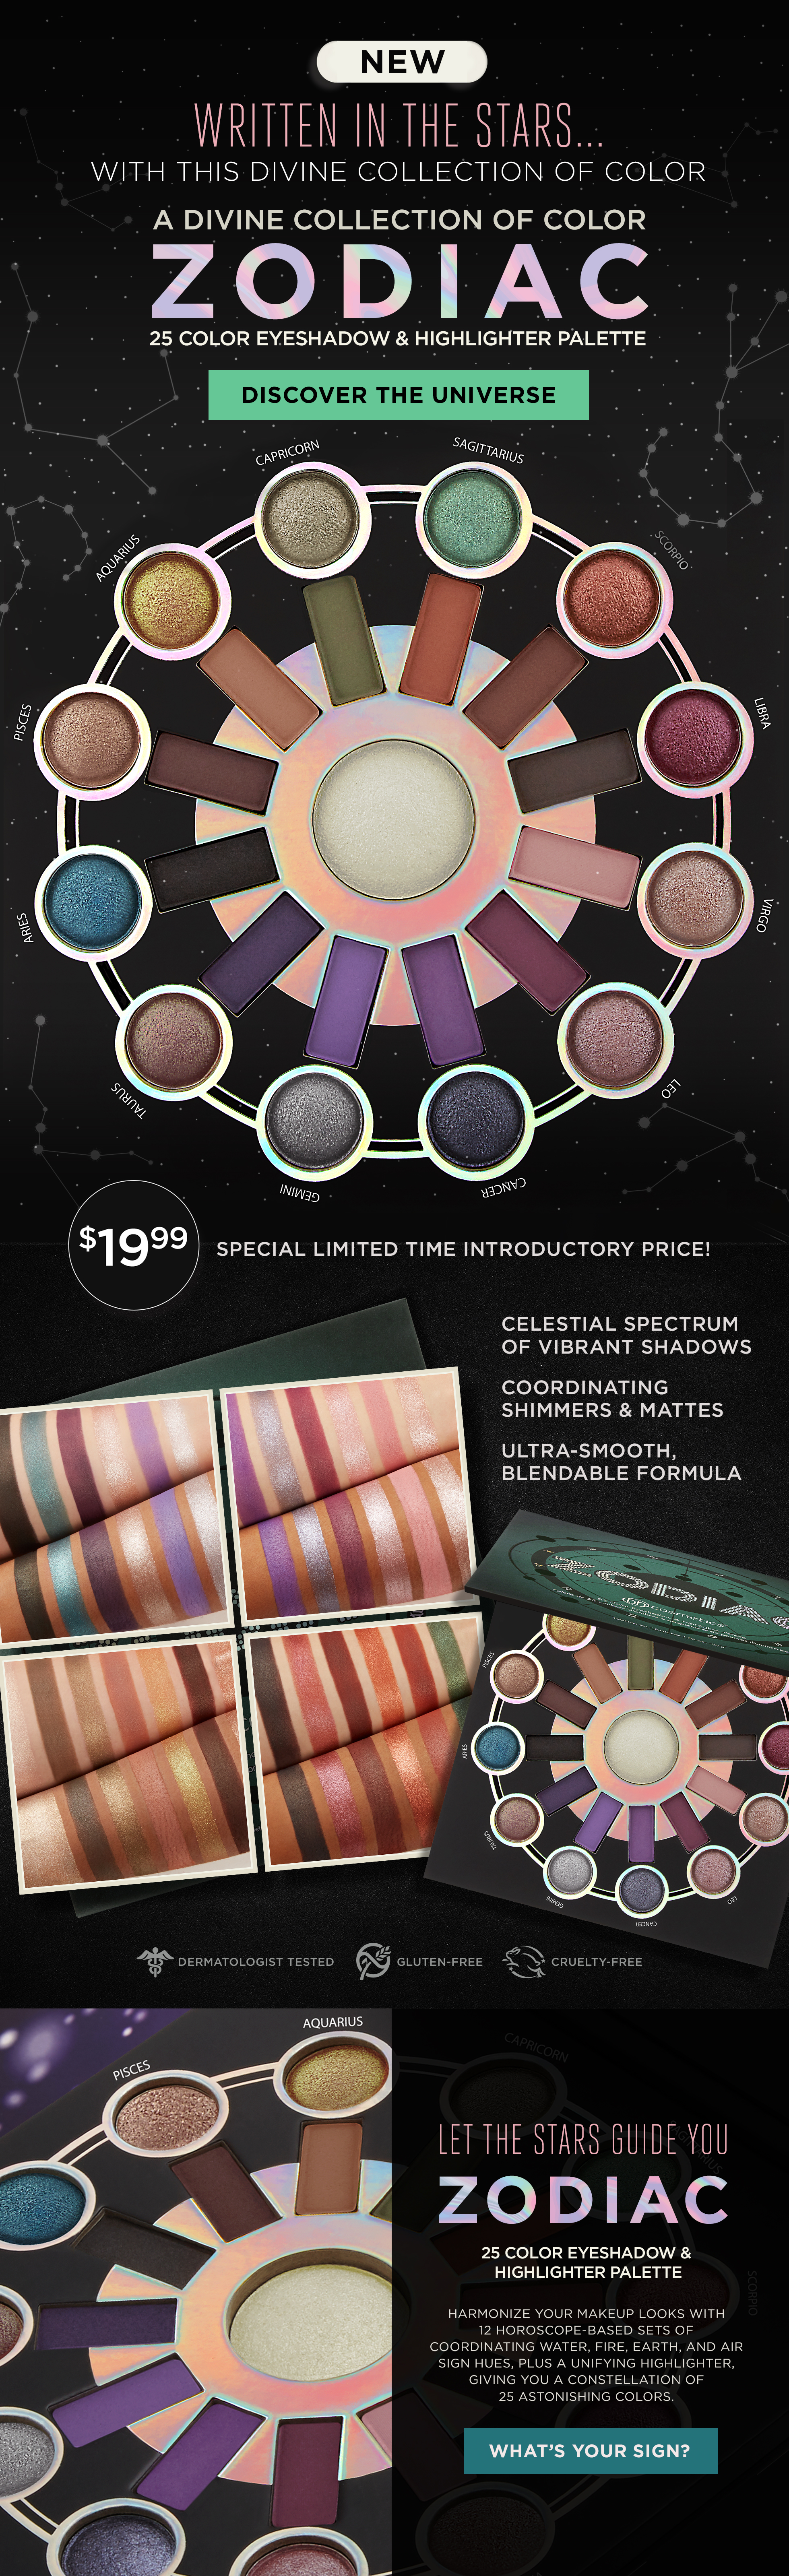 Zodiac Love Signs - 25 Color Eyeshadow & Highlighter Palette by BH Cosmetics #21